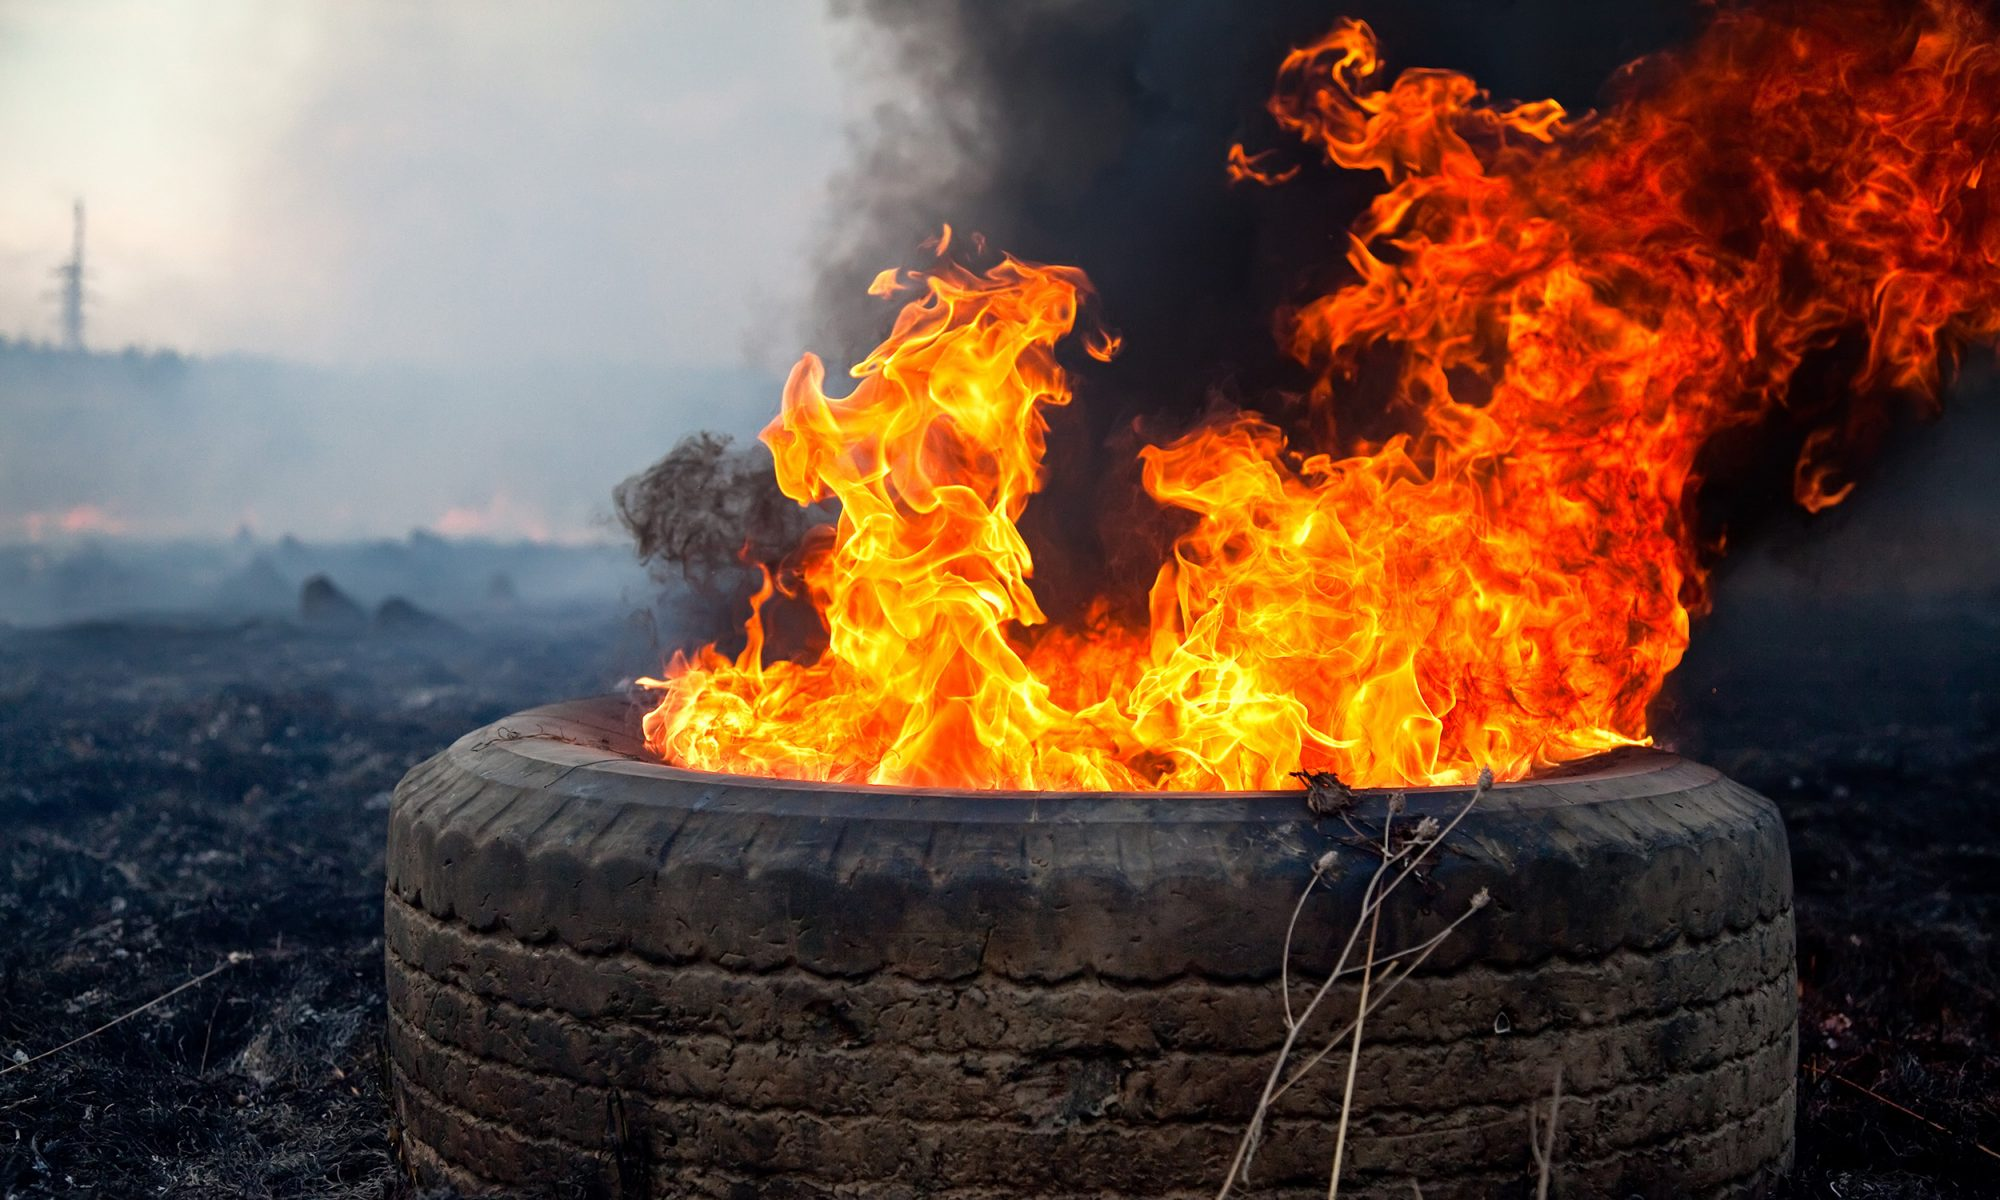 EC: What to Eat for Breakfast When the World Is a Giant Tire Fire